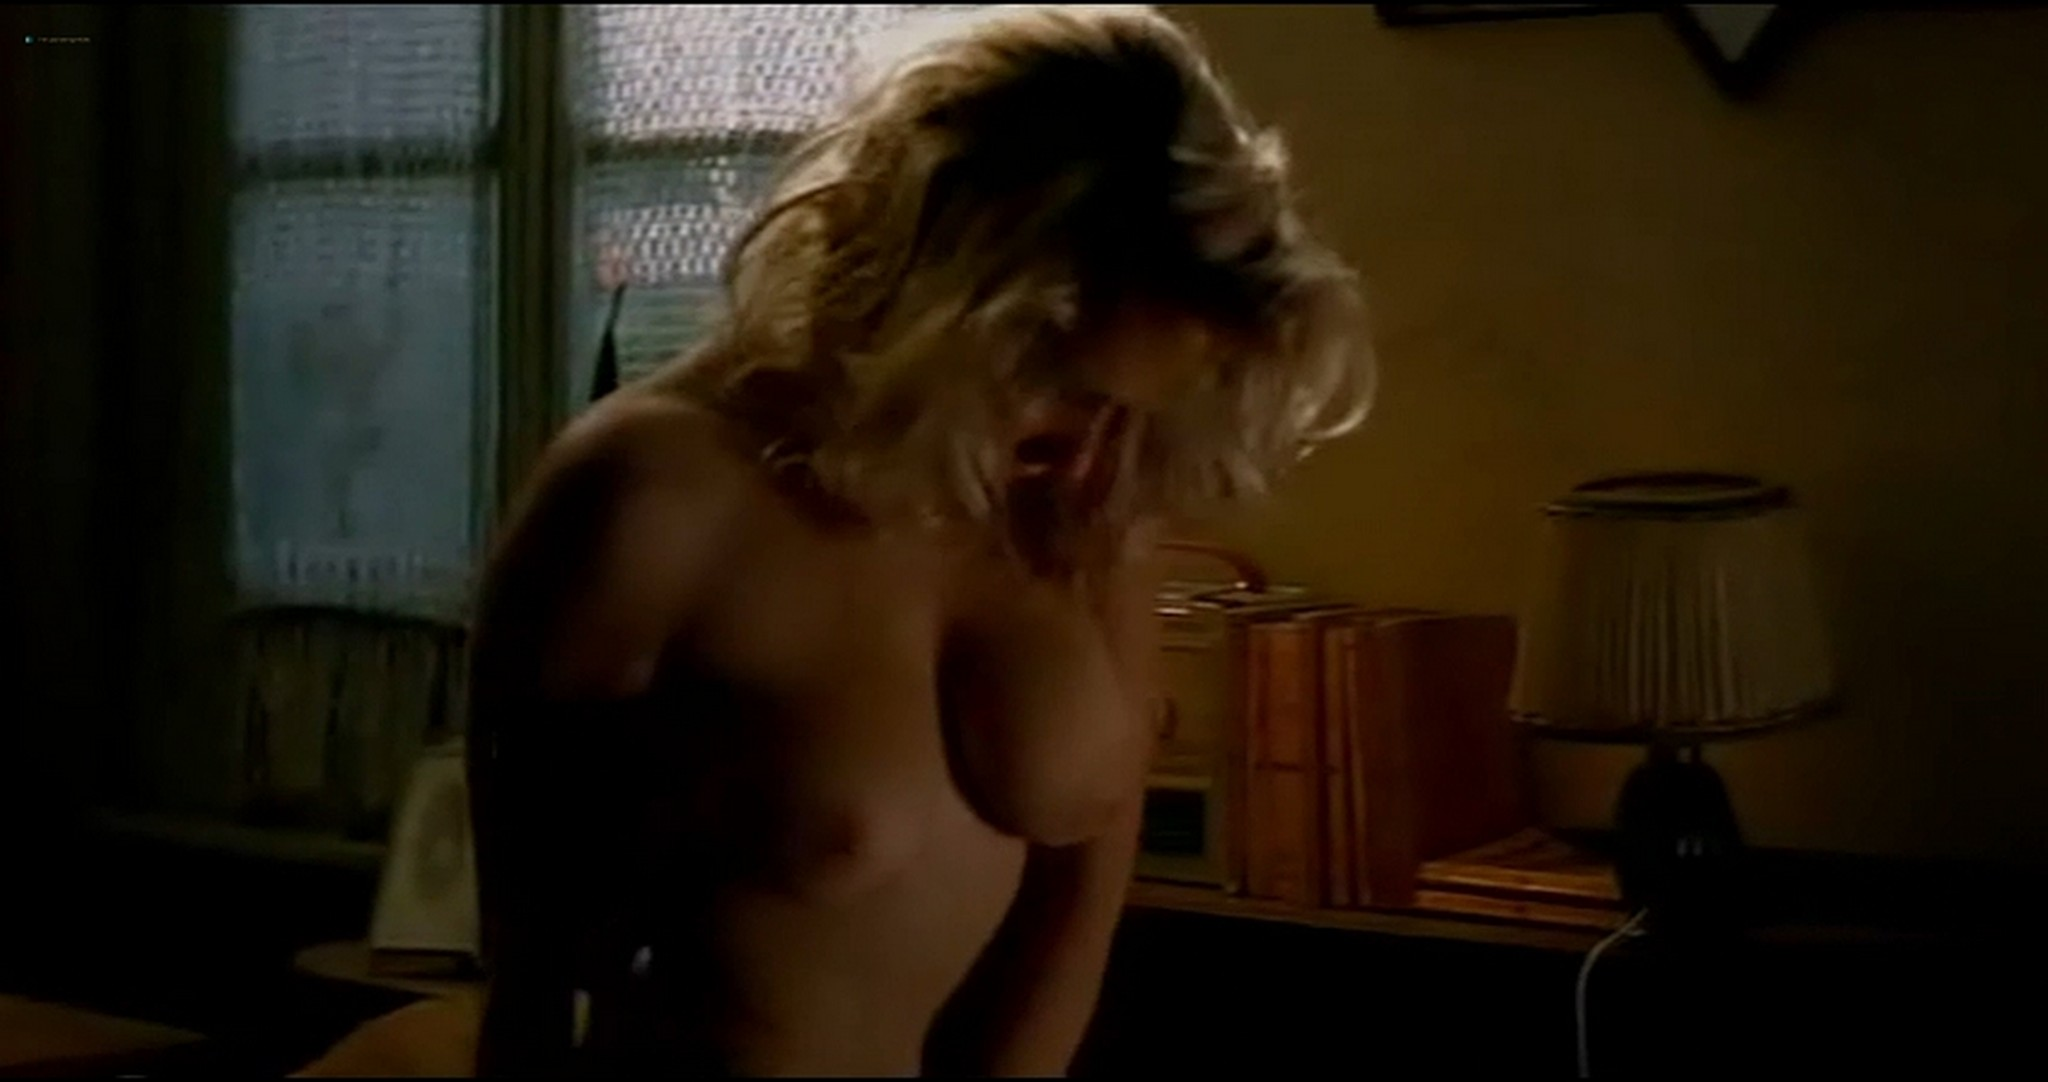 Pauline Lafont nude full frontal Summer on a gentle slope FR 1987 DVDrip 6